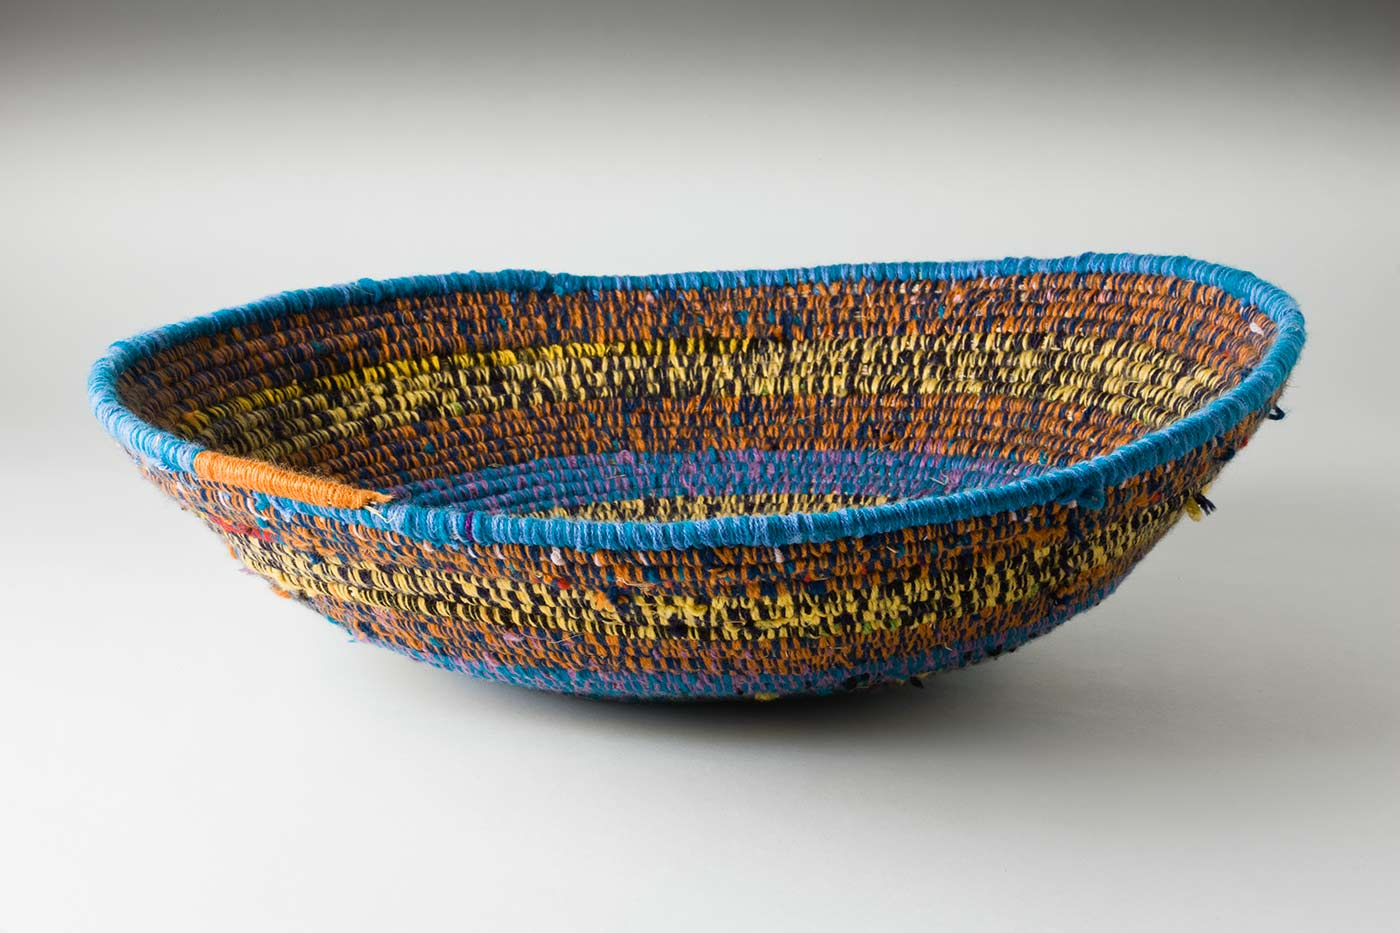 A circular coiled multicoloured yarn and plant fibre bowl shaped basket. The centre of the basket is pale pink yarn, covering the the plant fibre, followed by horizontal alternate yarn covering over the fibre. The yarn is coloured purple-green, green-grey, yellow-black, orange- blue. The top plant fibre is covered by green-blue yarn finished by an orange line. - click to view larger image